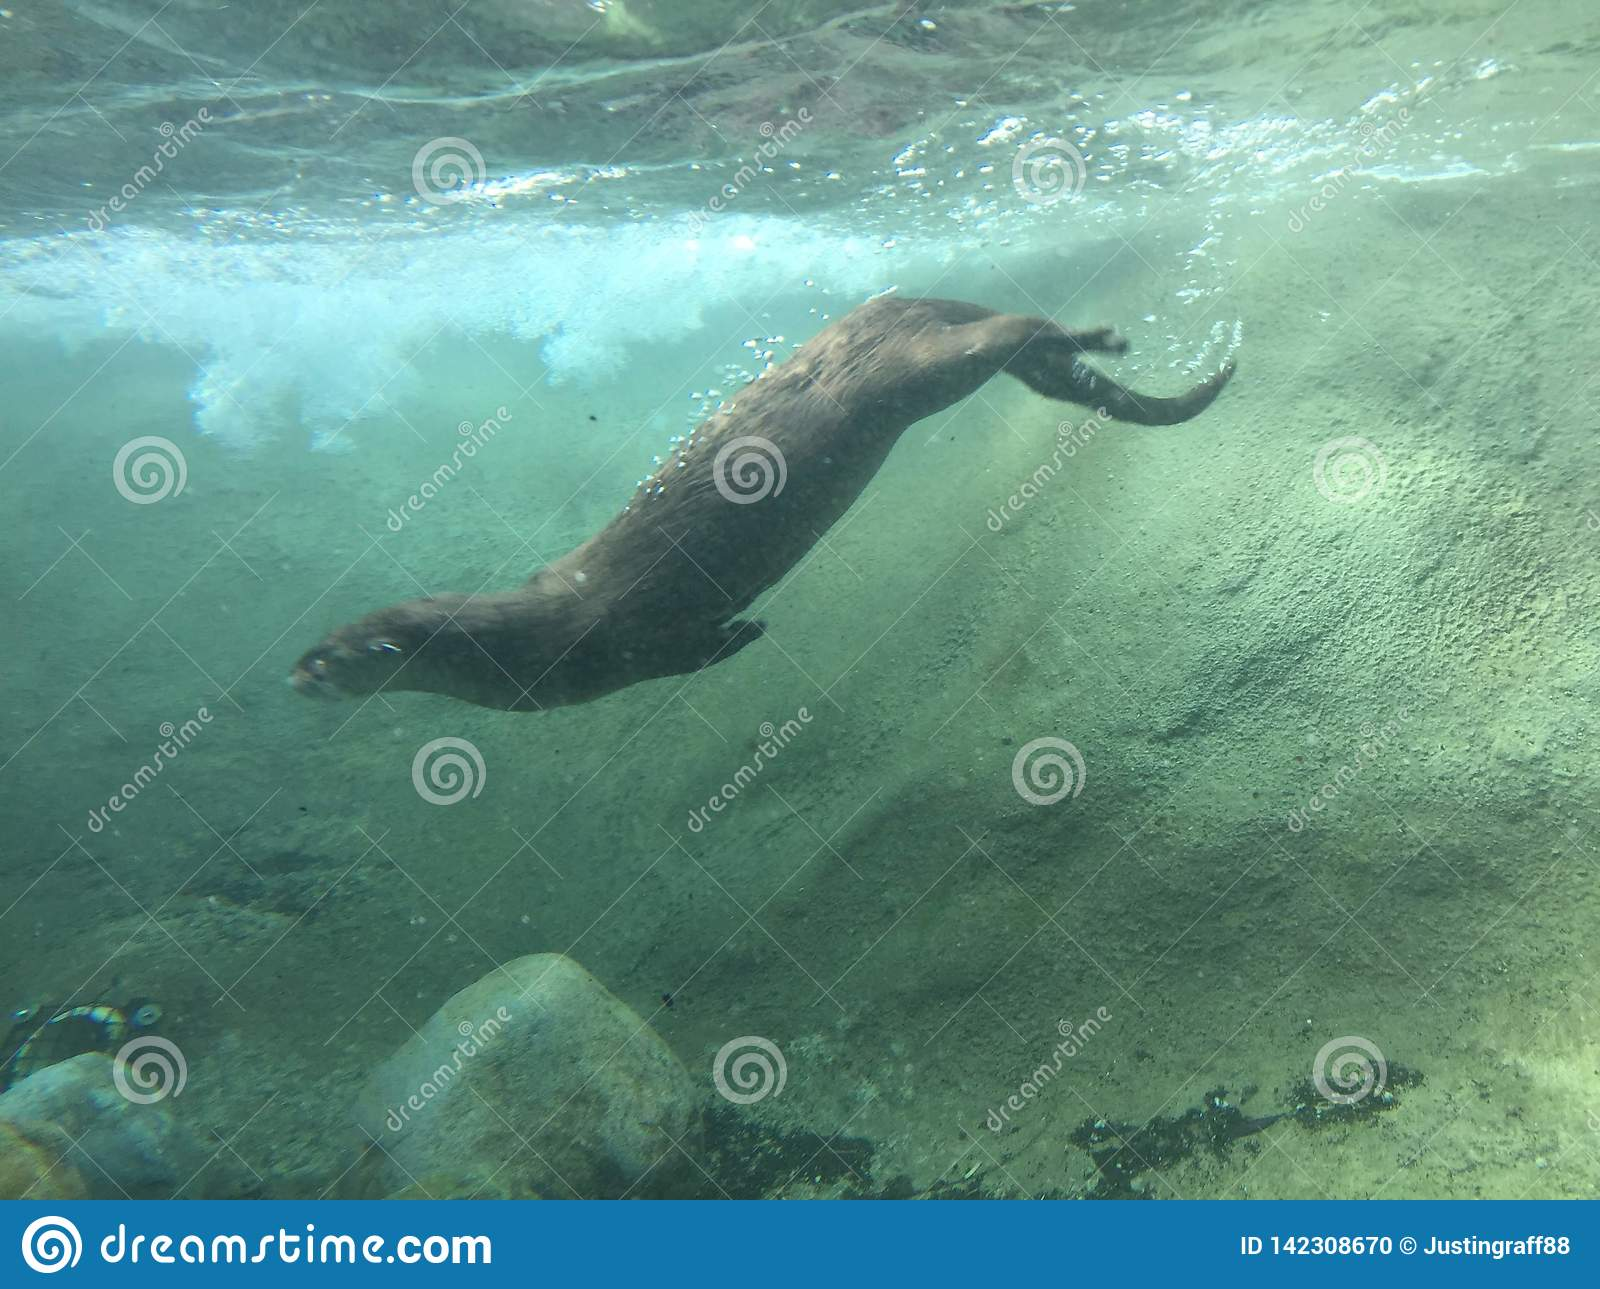 River Otter Diving into murky water swimming underwater with rocks and dirt stirred up